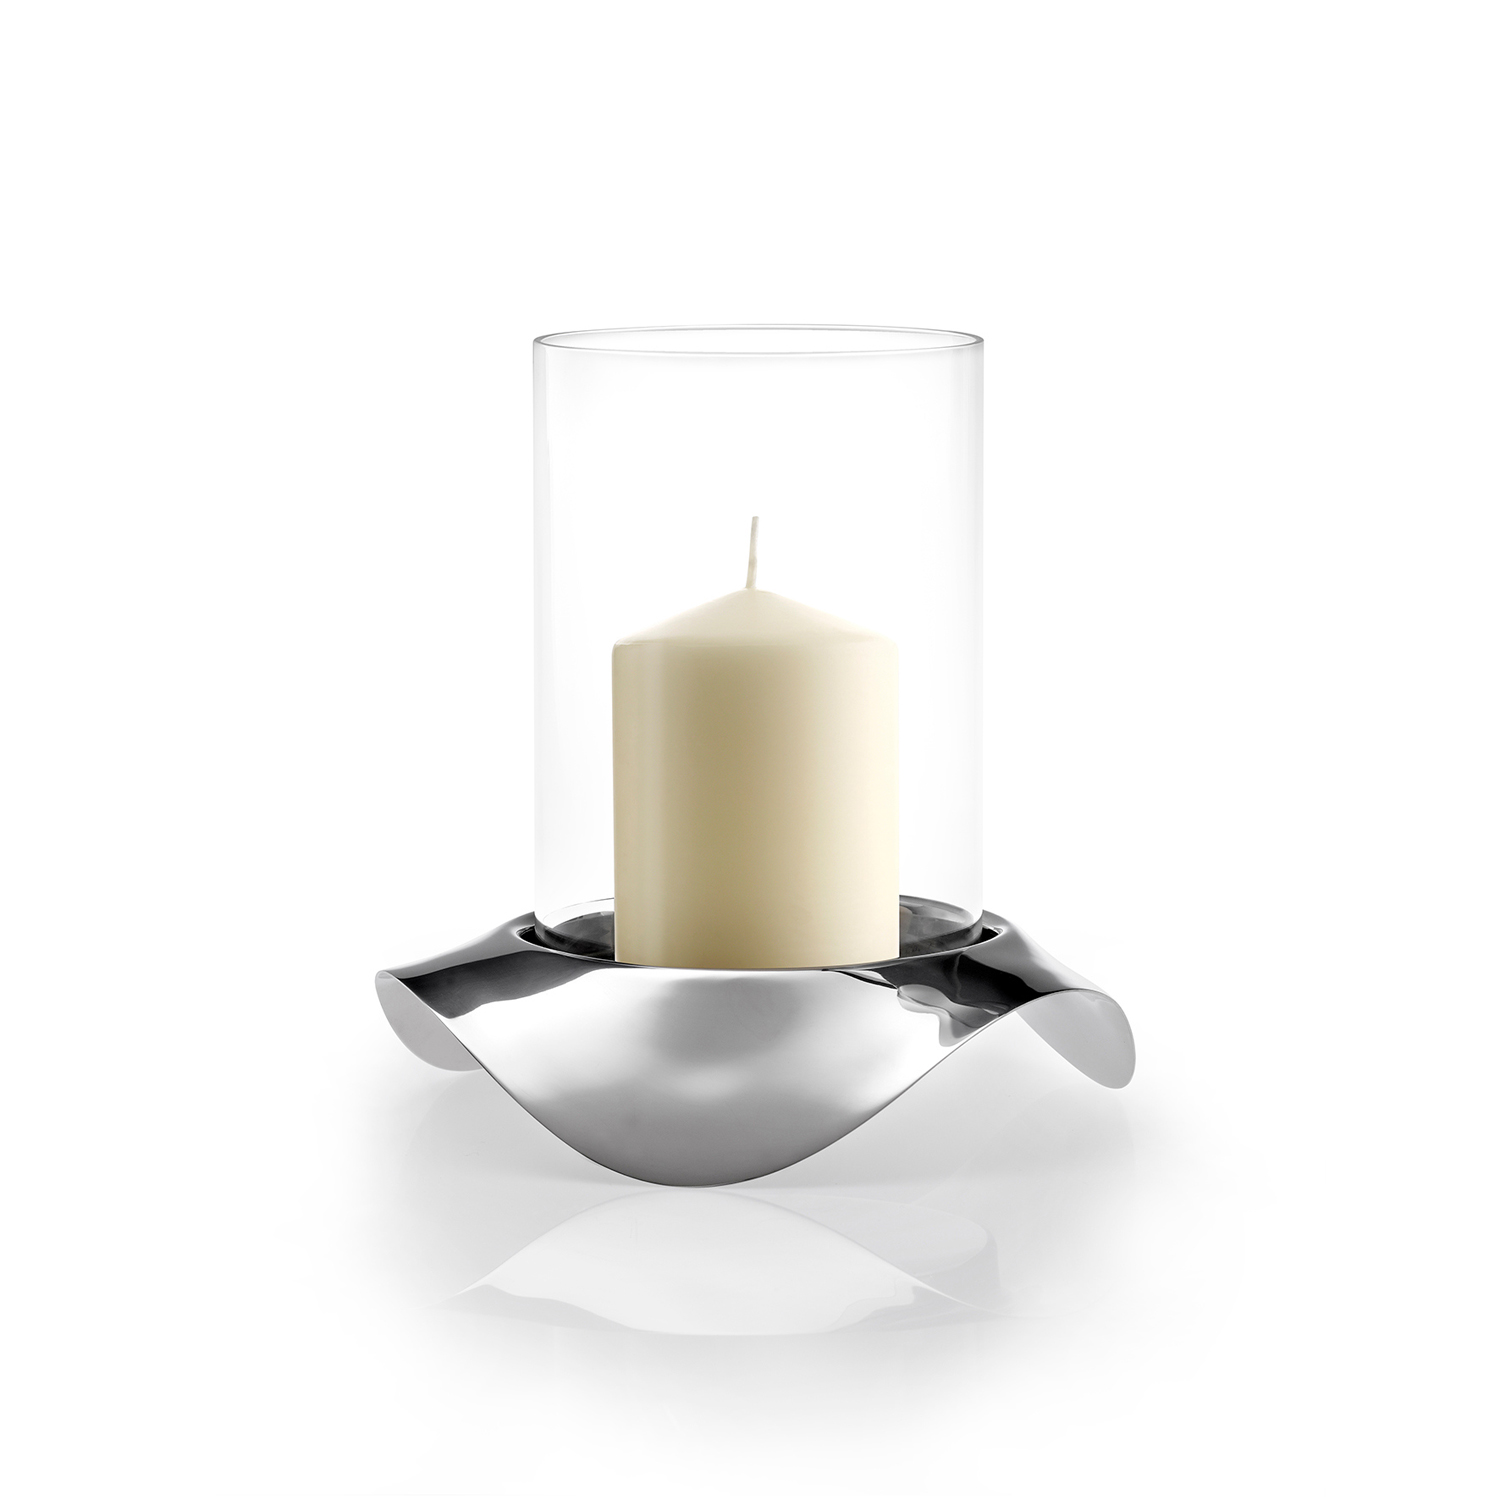 Image of Robert Welch Drift Hurricane Lamp, Stainless Steel